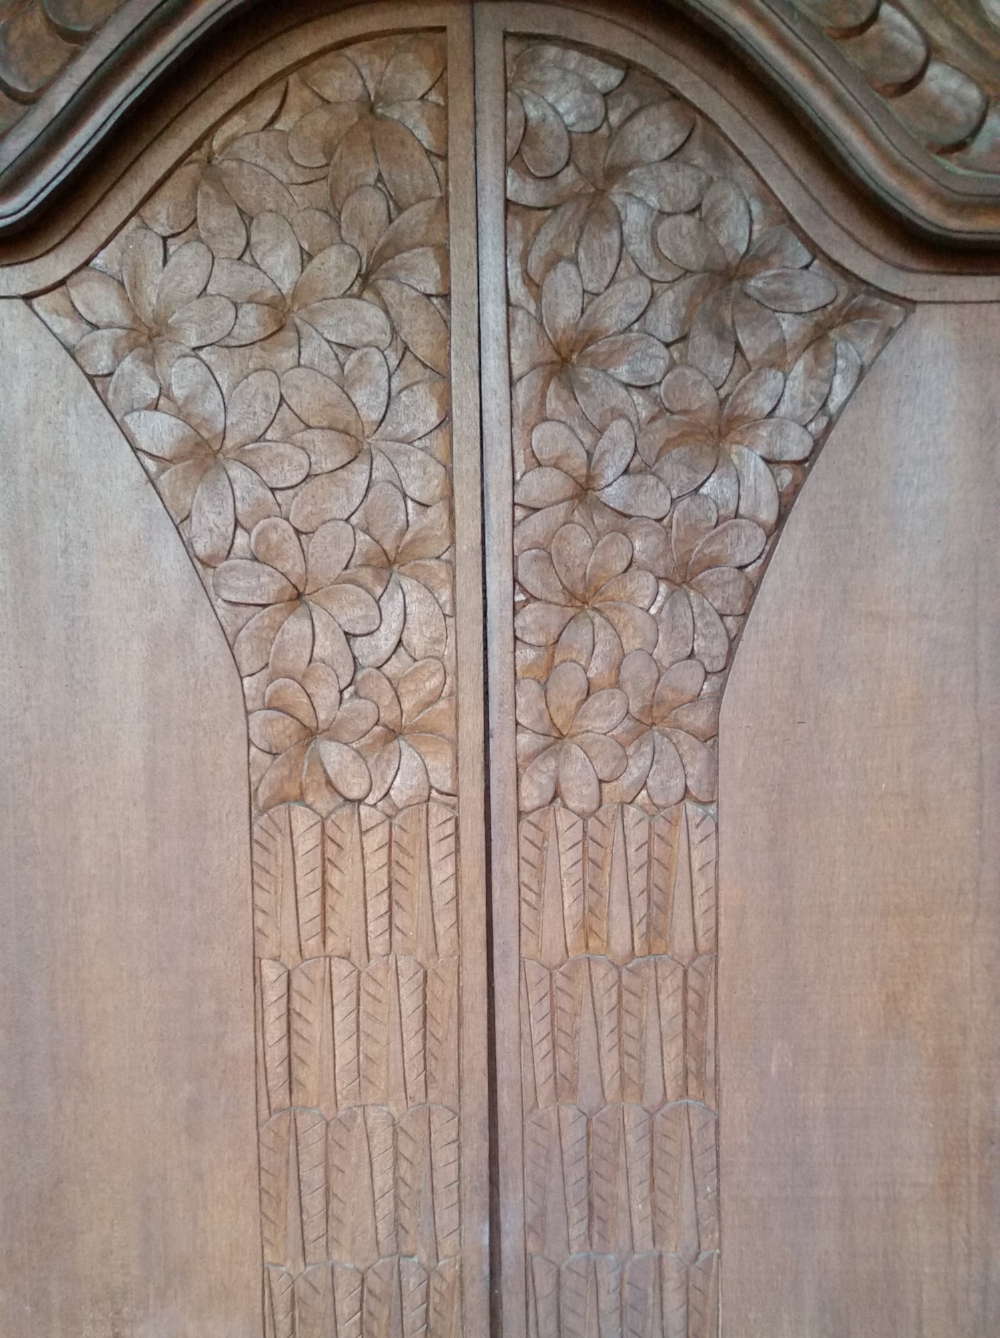 The doors to my room. Each set of doors in the building were carved with similar but individual floral designs.   Everywhere there was such beauty.